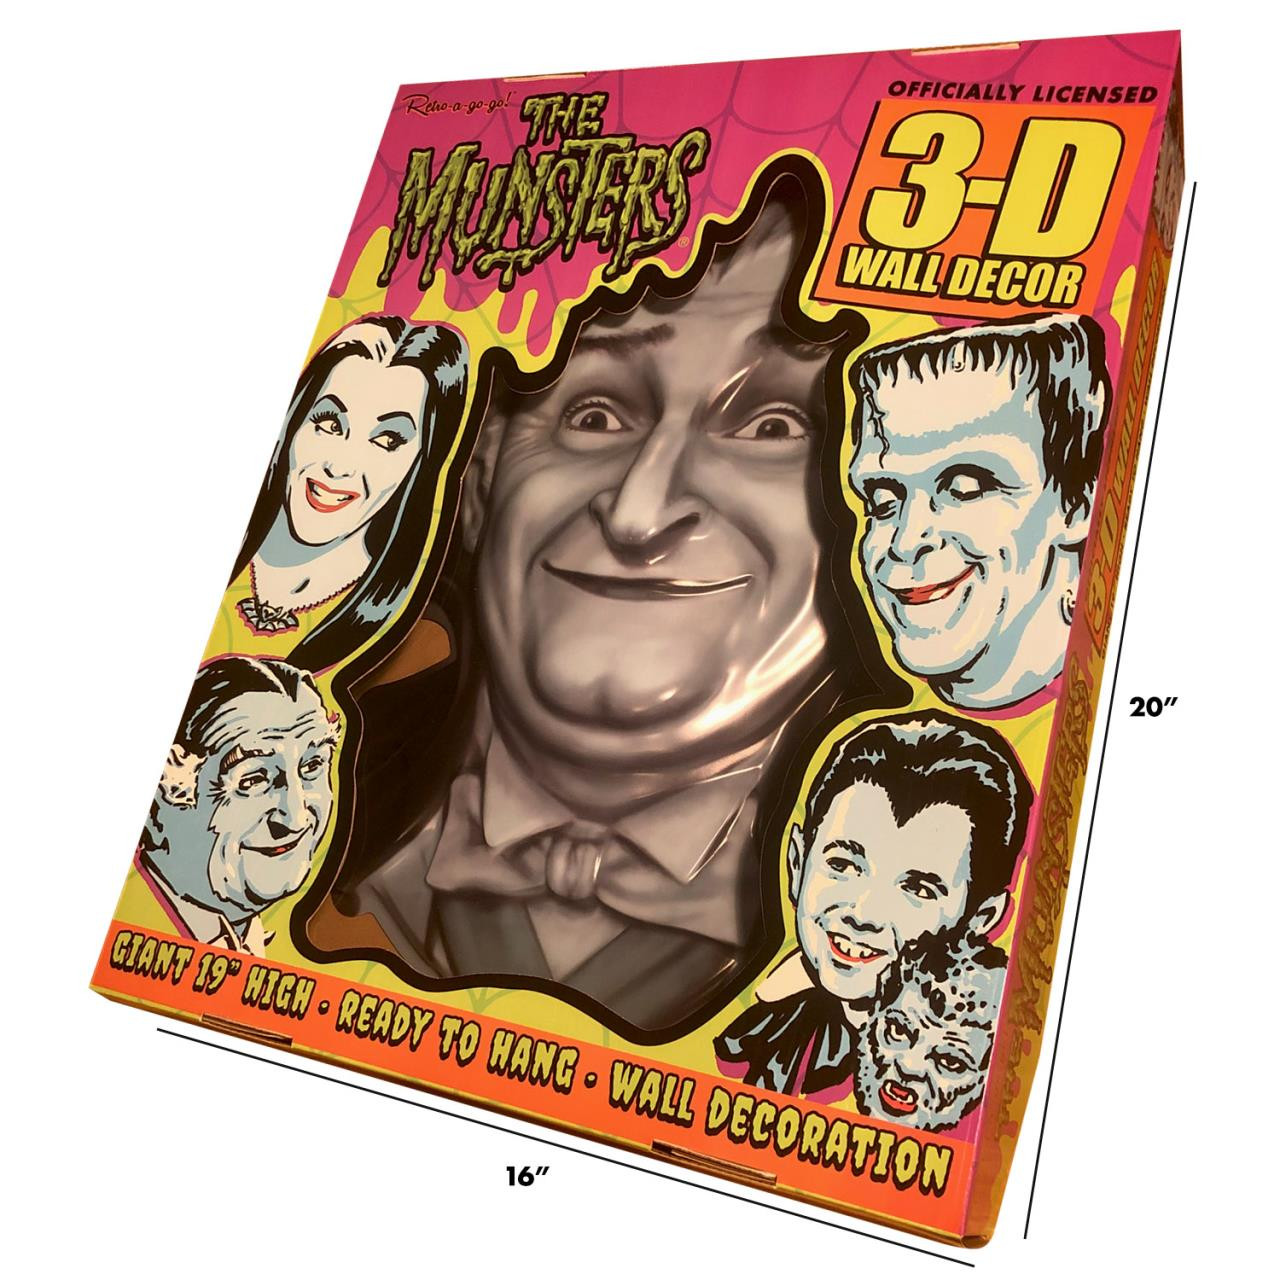 Grandpa Munster 3-D Wall Decor* - 0659682815688